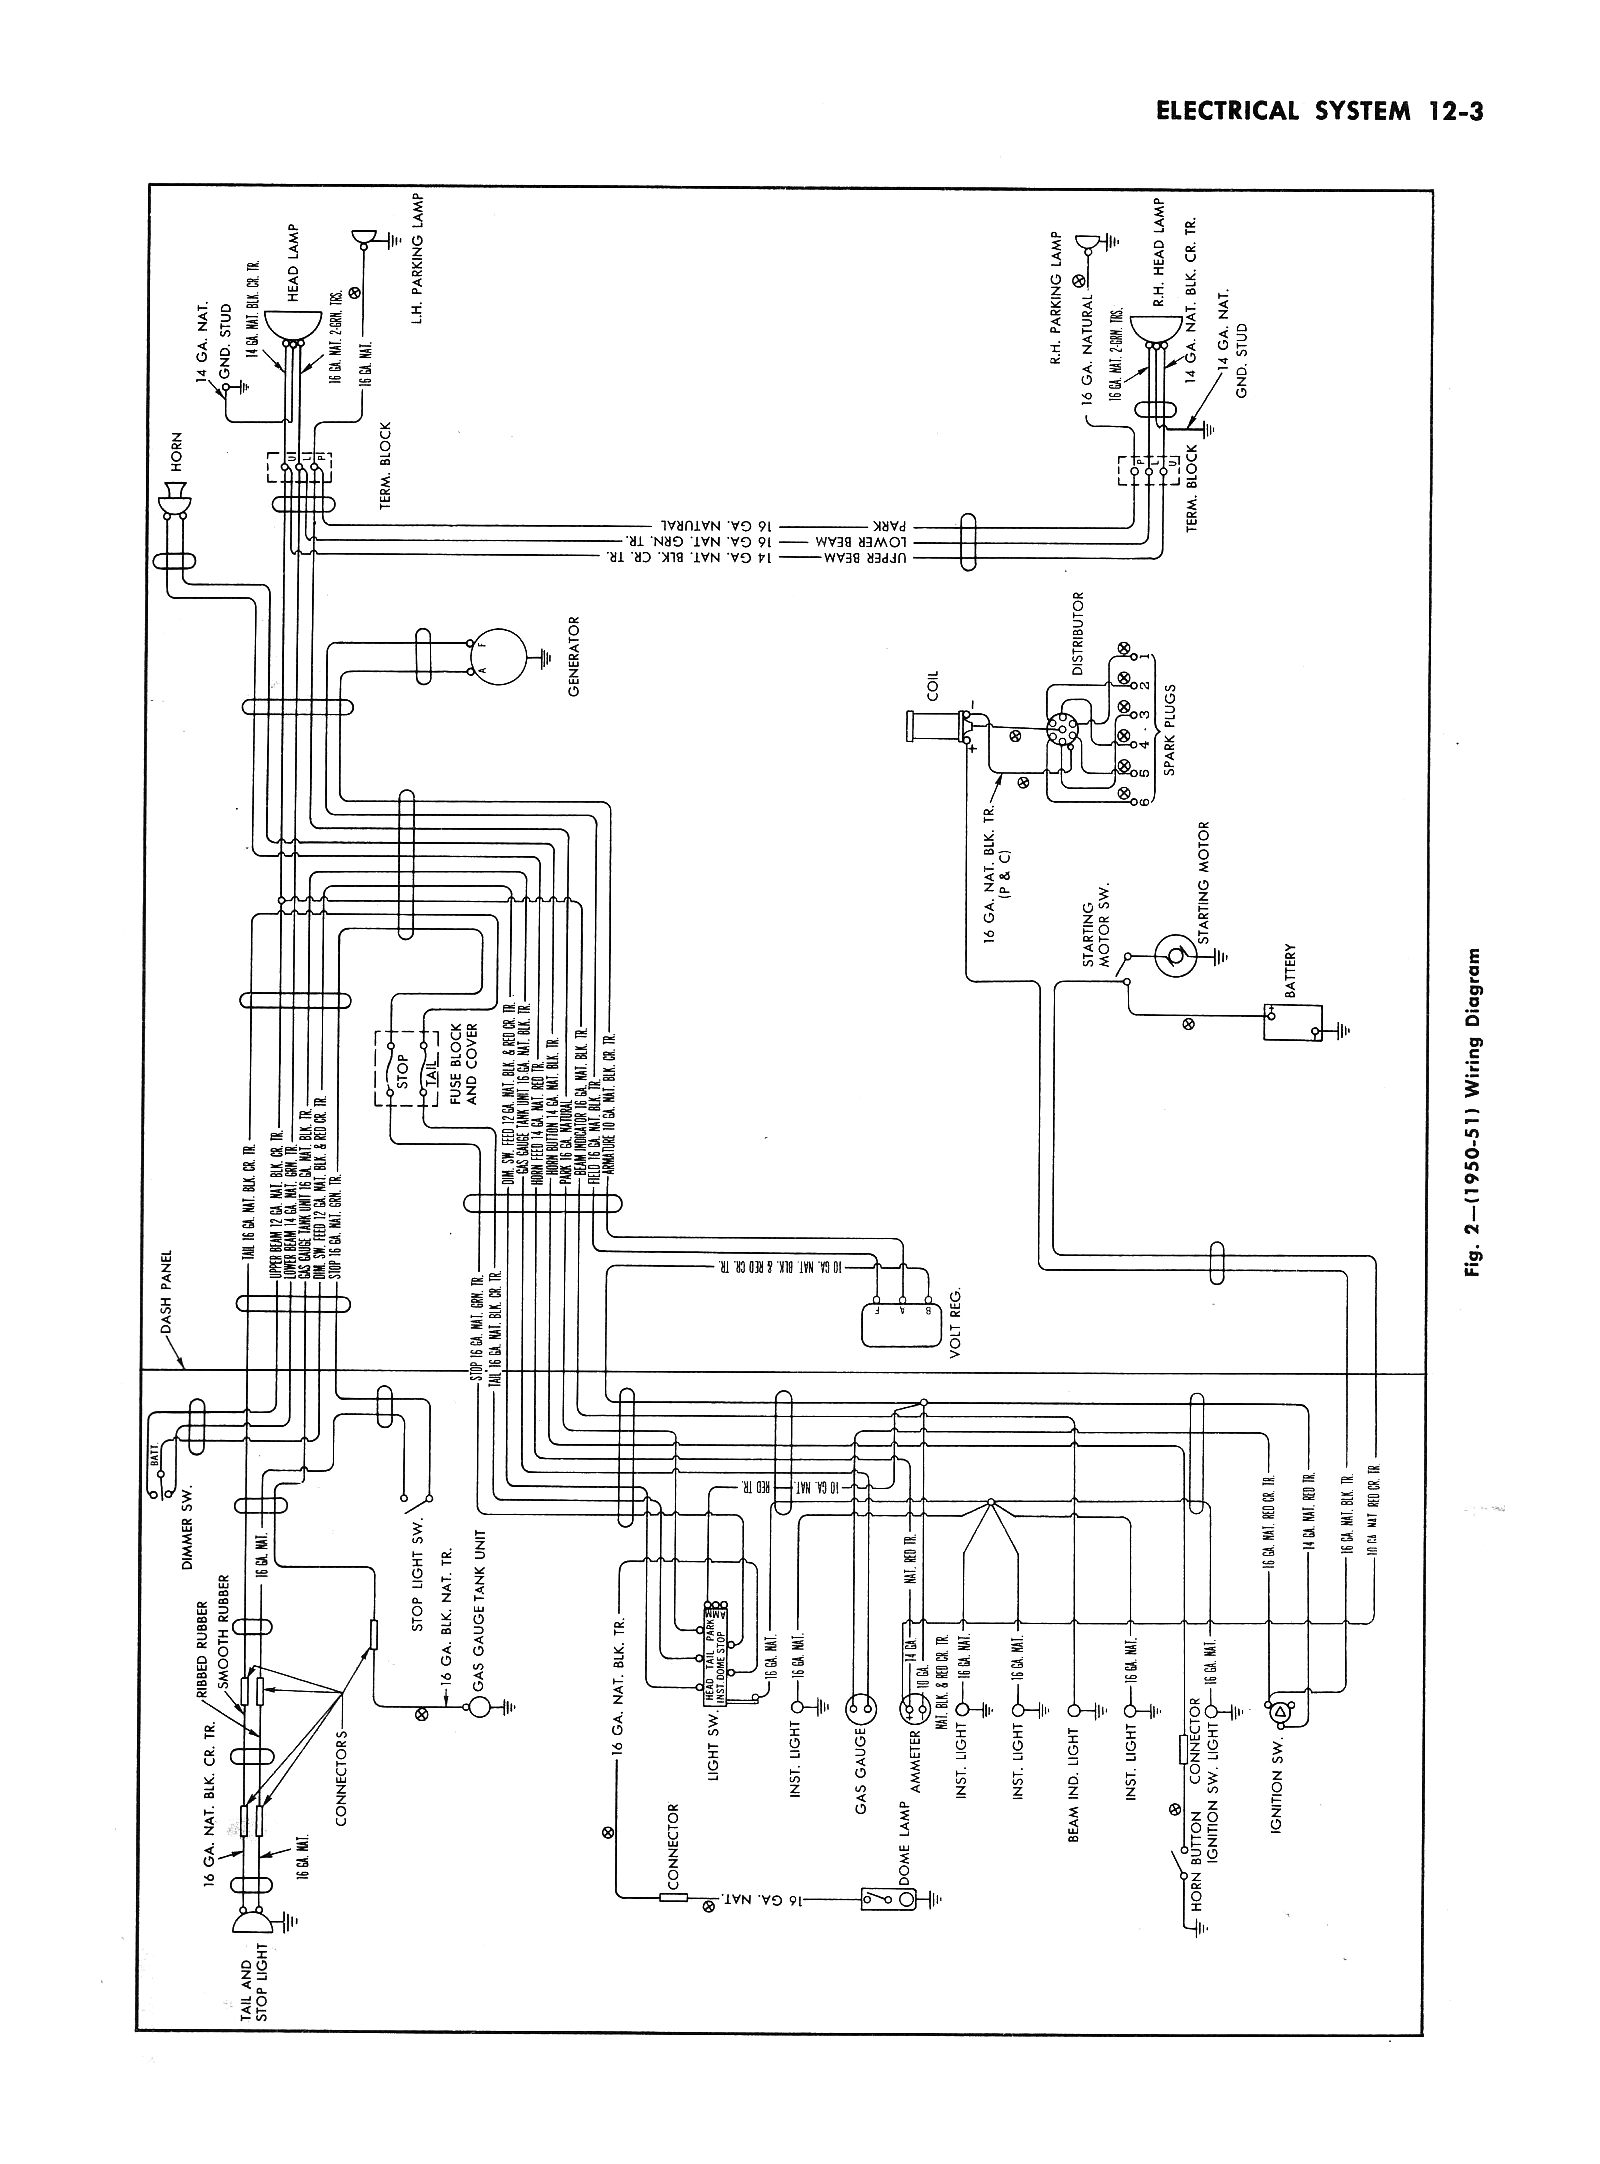 hight resolution of 1959 chevy pickup wiring diagram data wiring schema 1953 ford truck wiring diagrams wiring diagram for